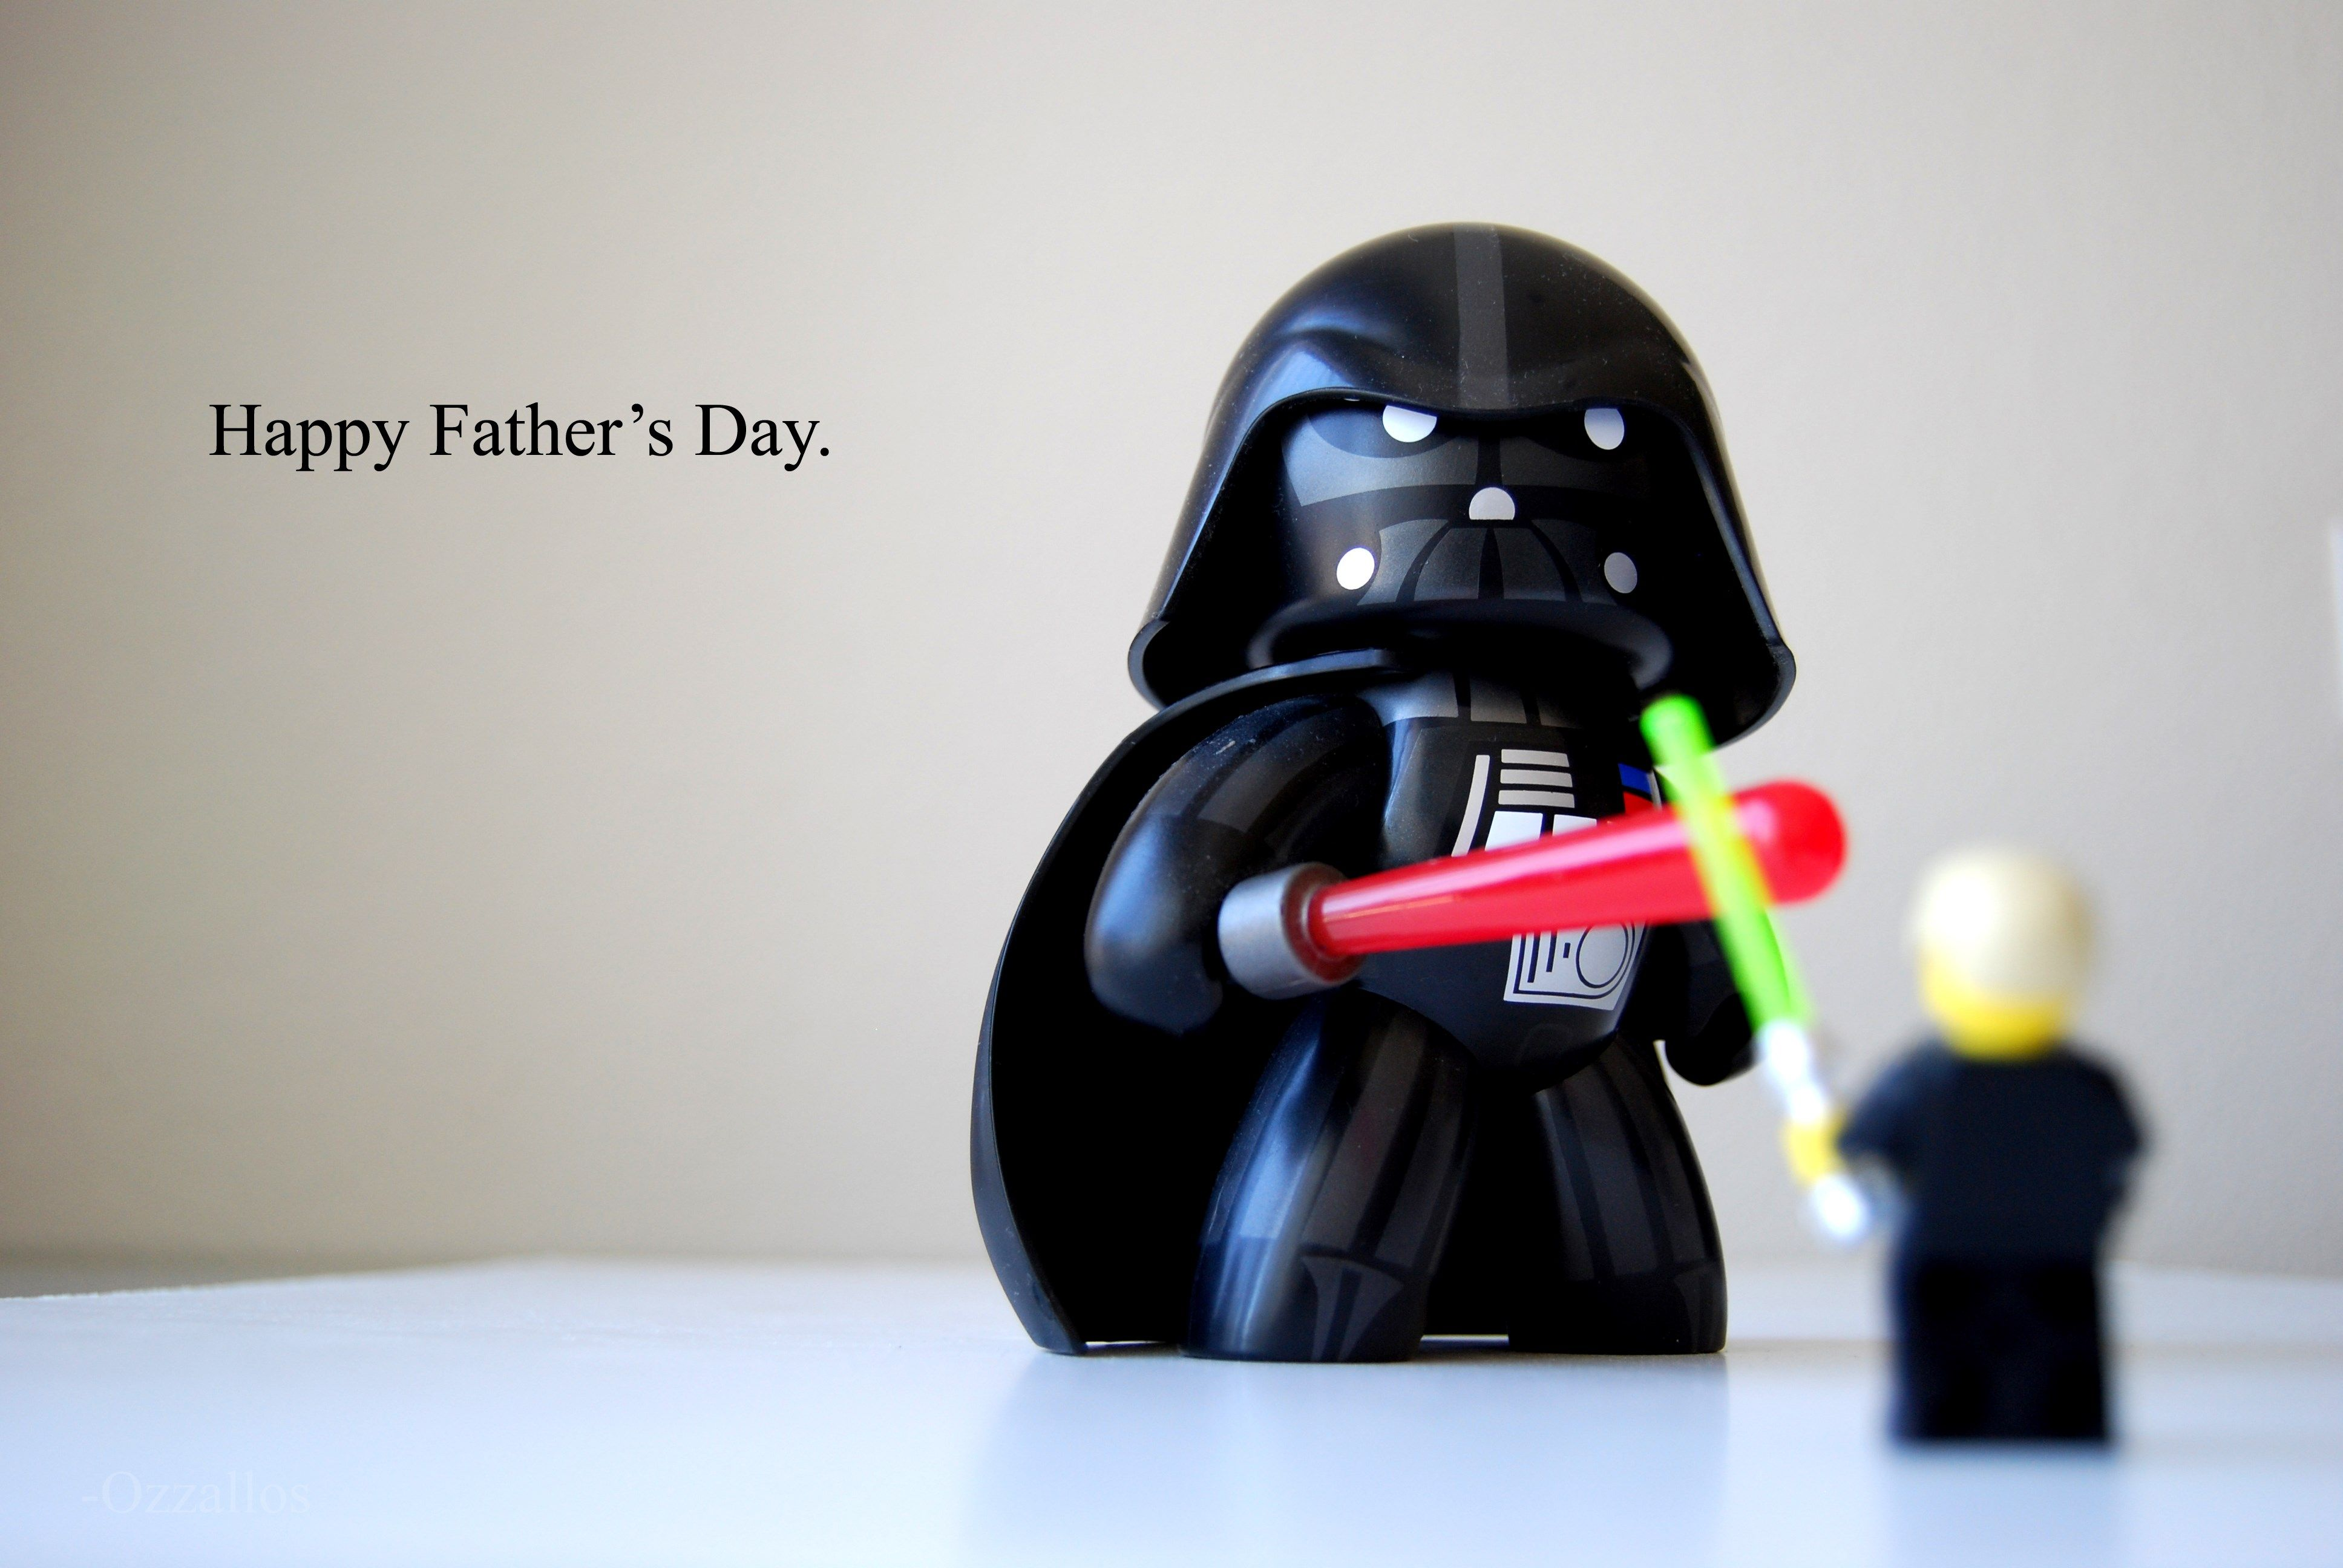 fathers day 4k wallpaper 3872x2592 With images Happy fathers 3872x2592